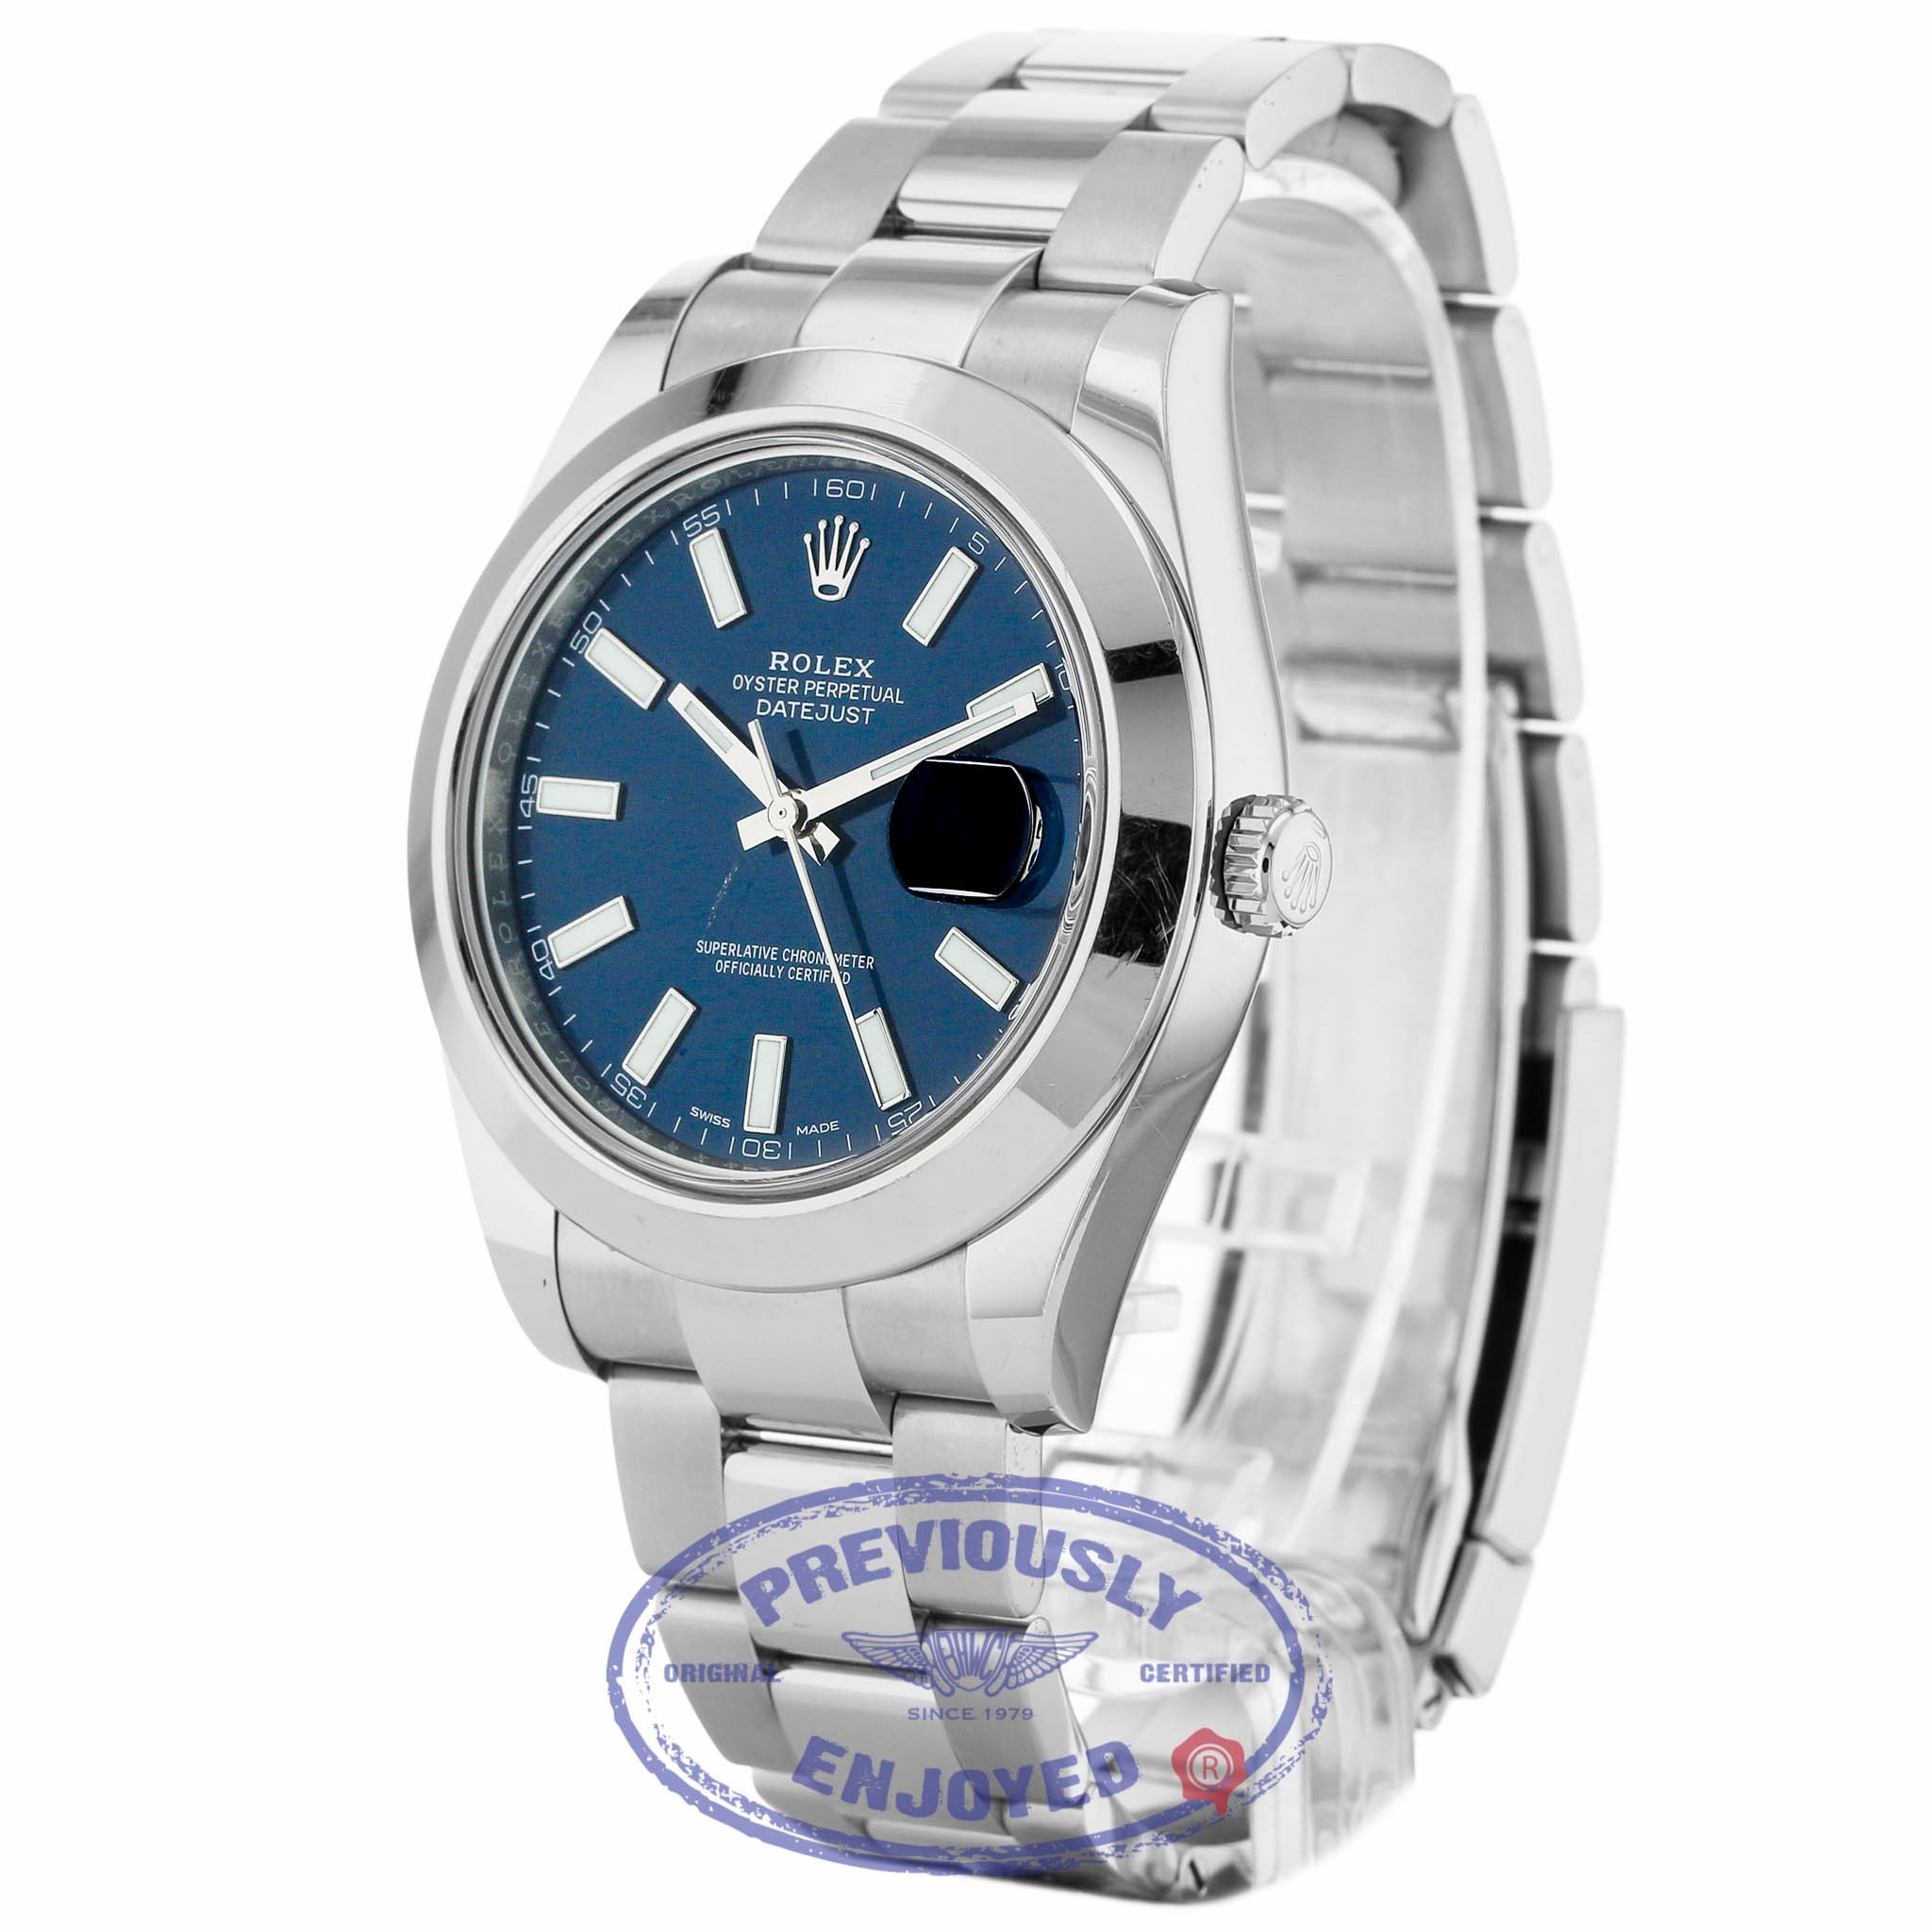 4e82606a799 Rolex Datejust II Stainless Steel 41mm Smooth Bezel Oyster Bracelet Blue  Stick Dial 116300 7483ZW - Beverly ...